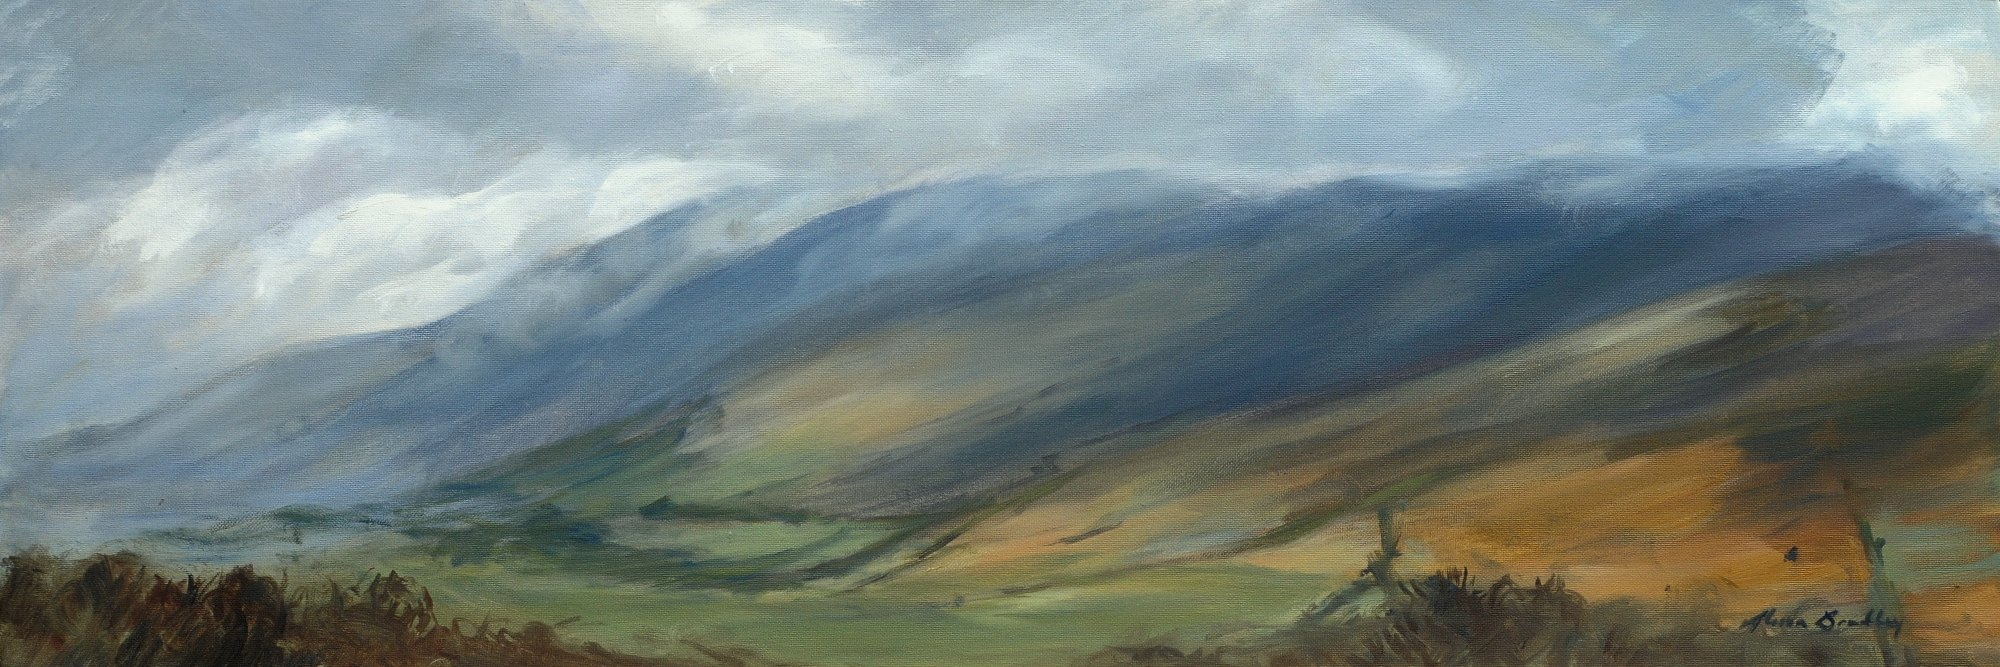 clouds-on-blencathra-lake-district.jpg